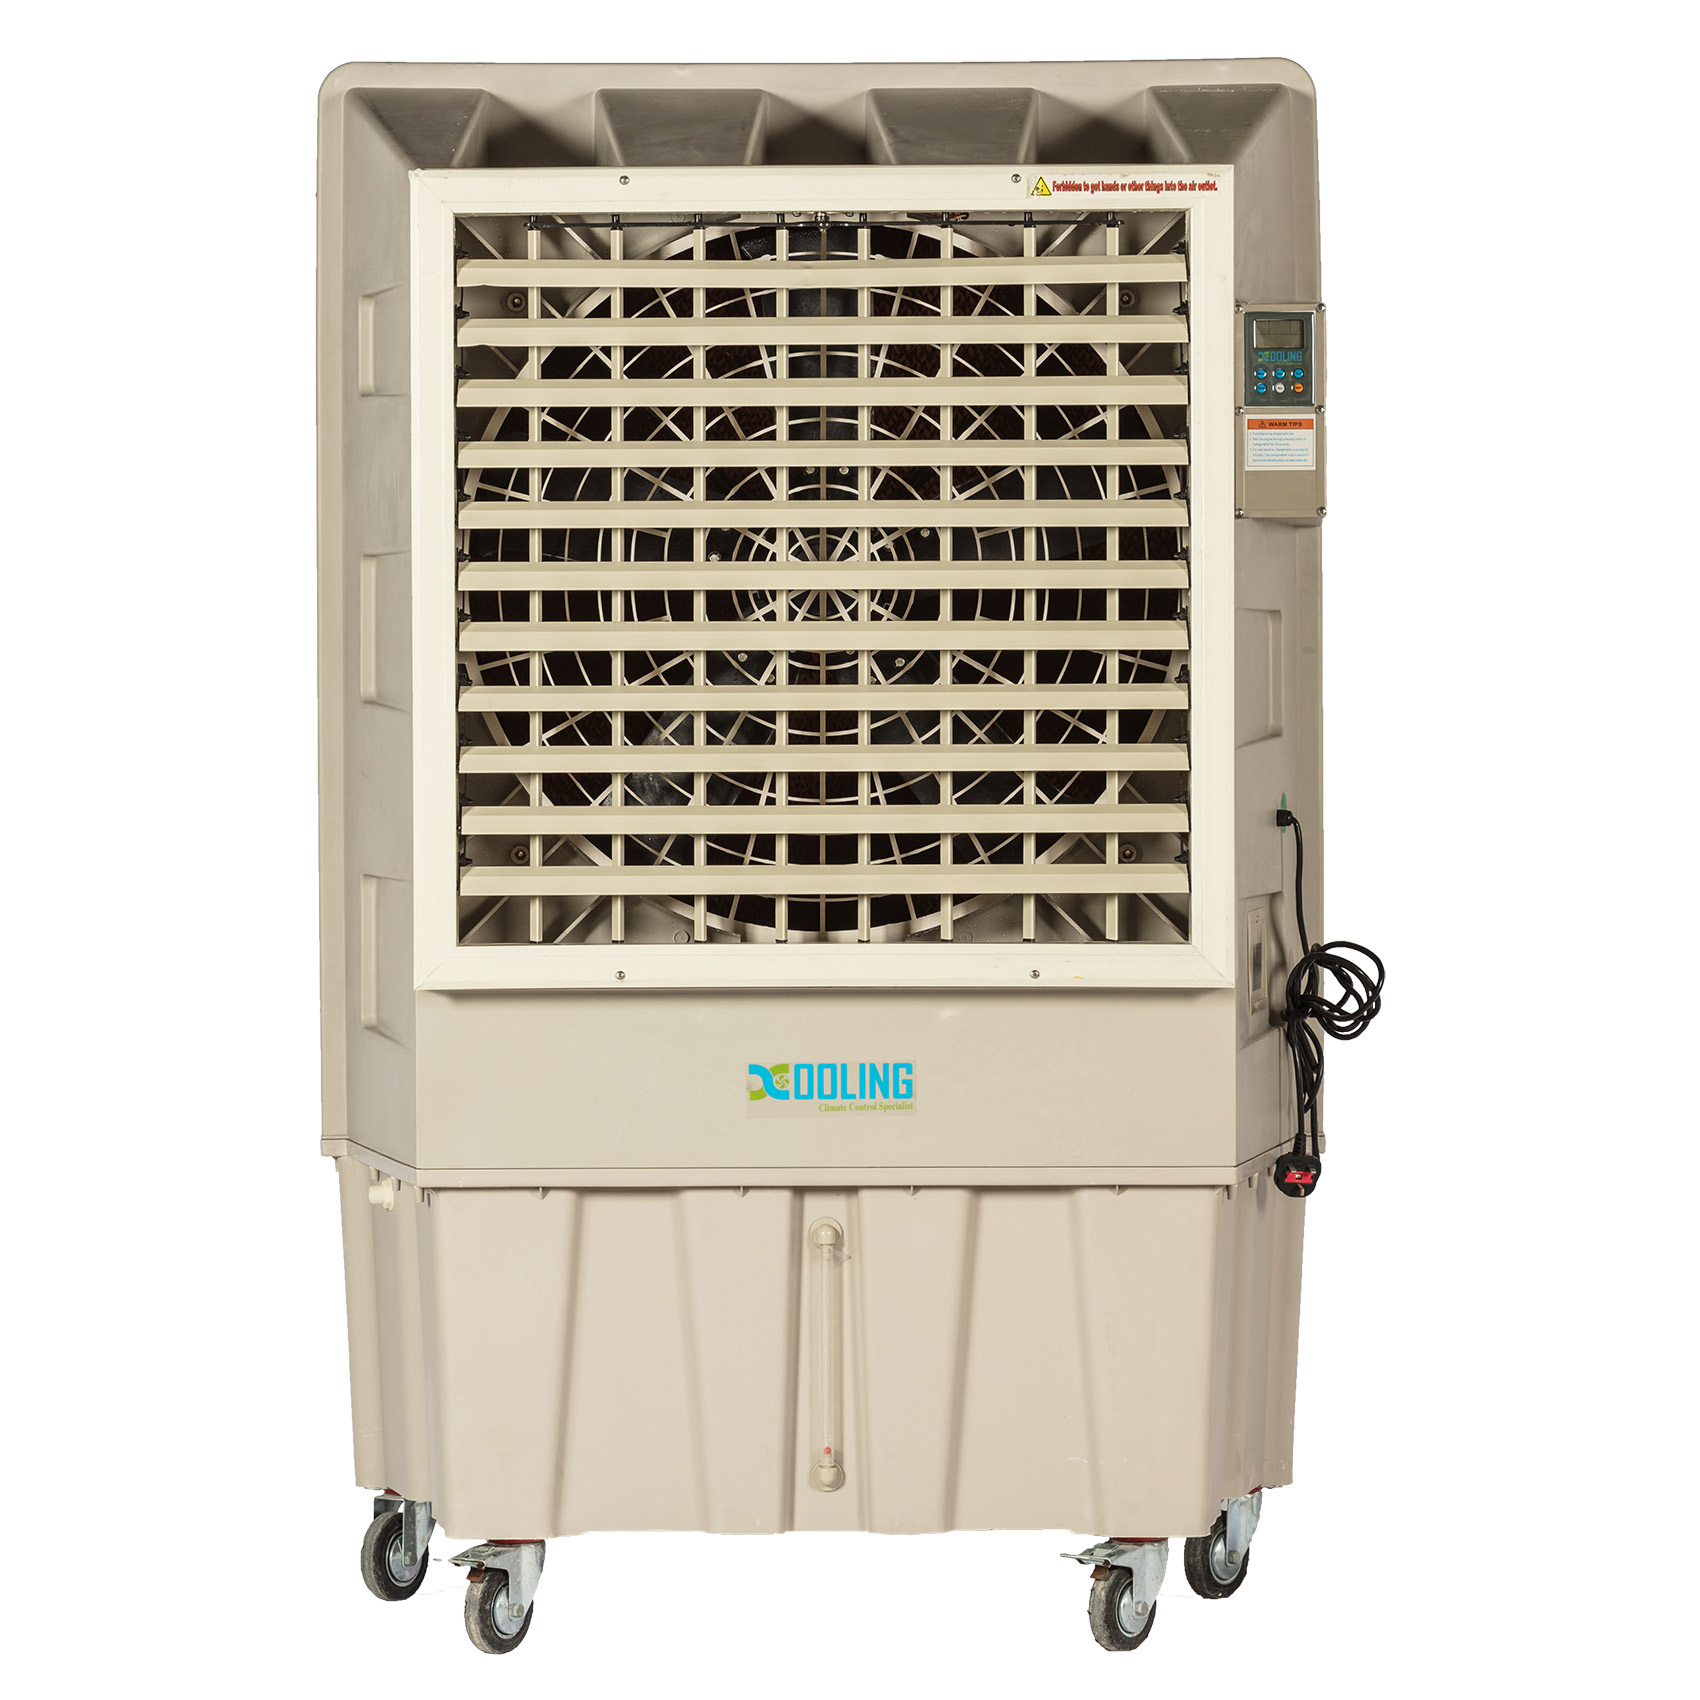 Evaporative outdoor air coolers